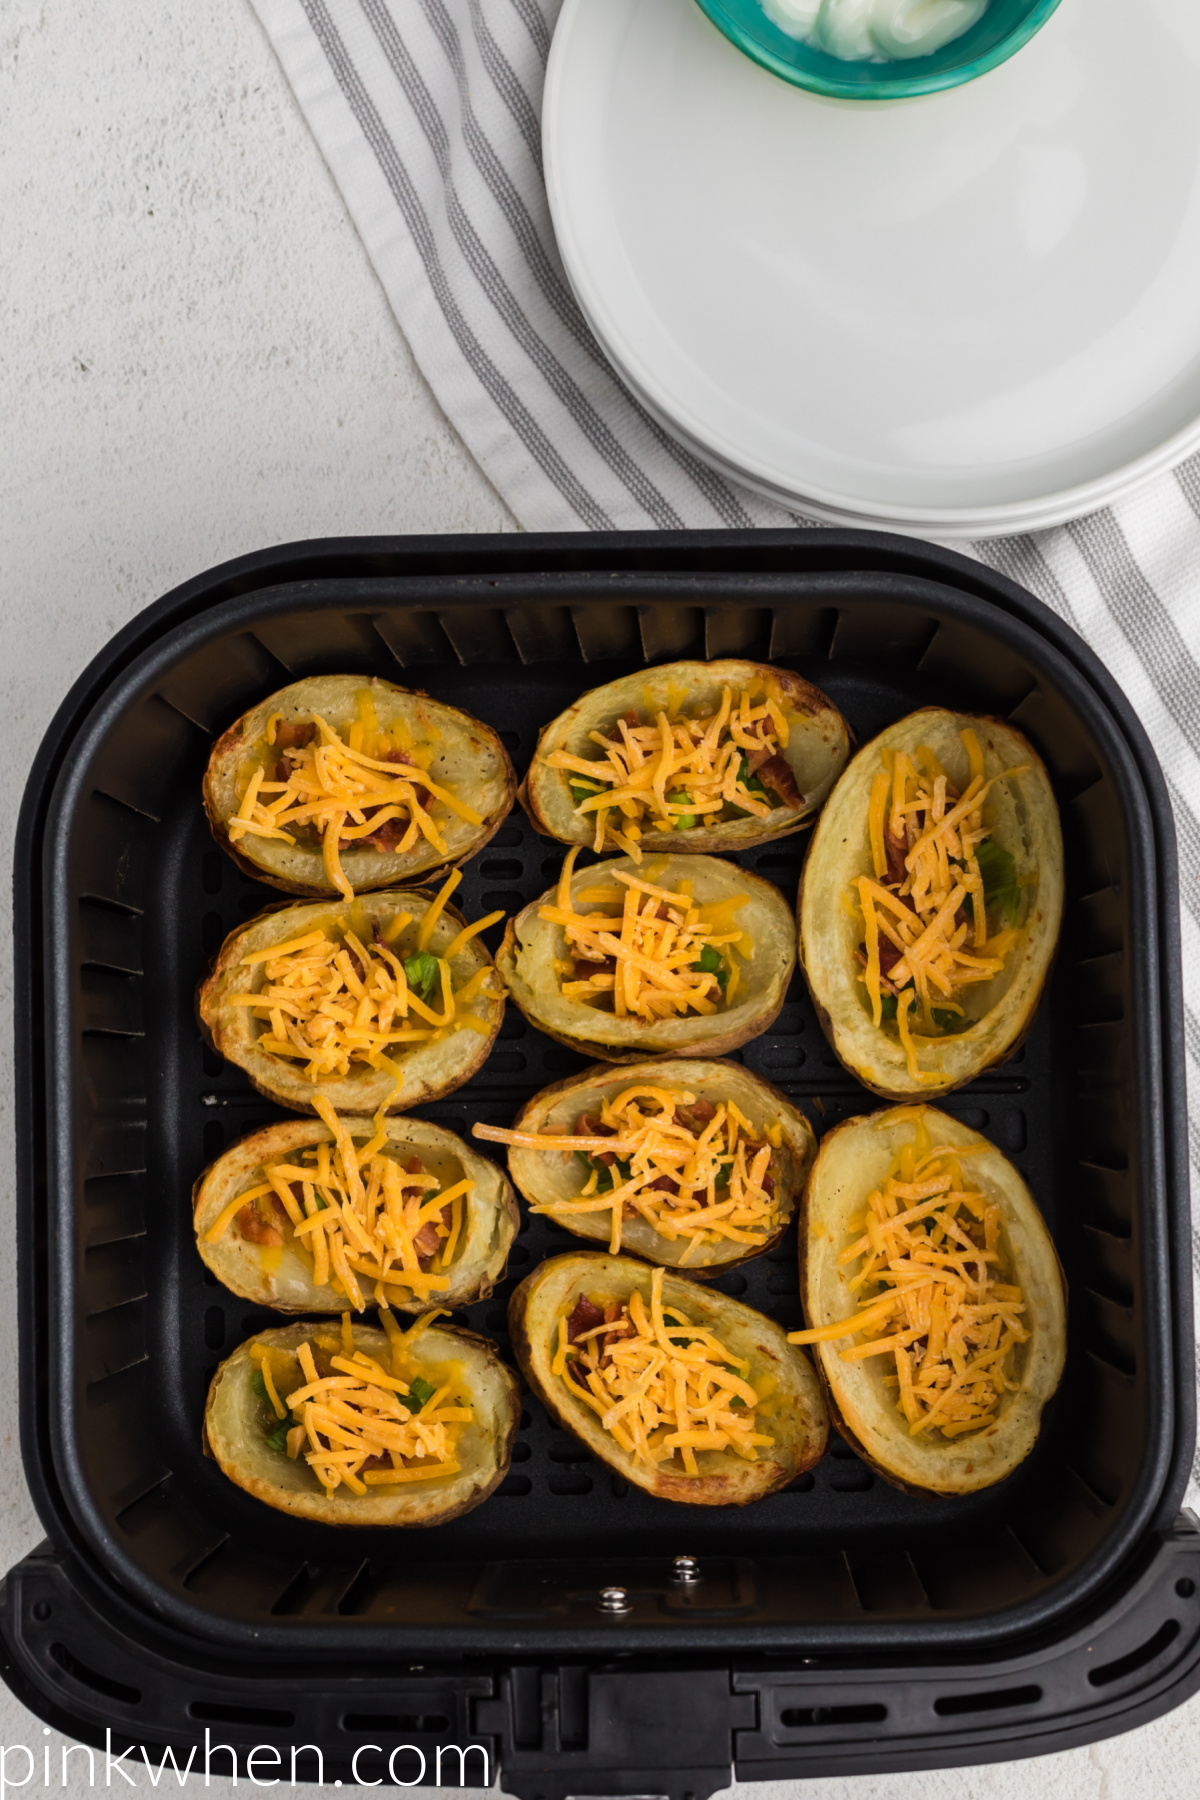 Potato skins loaded with cheese, bacon, and green onion tops ready to be cooked in the air fryer.